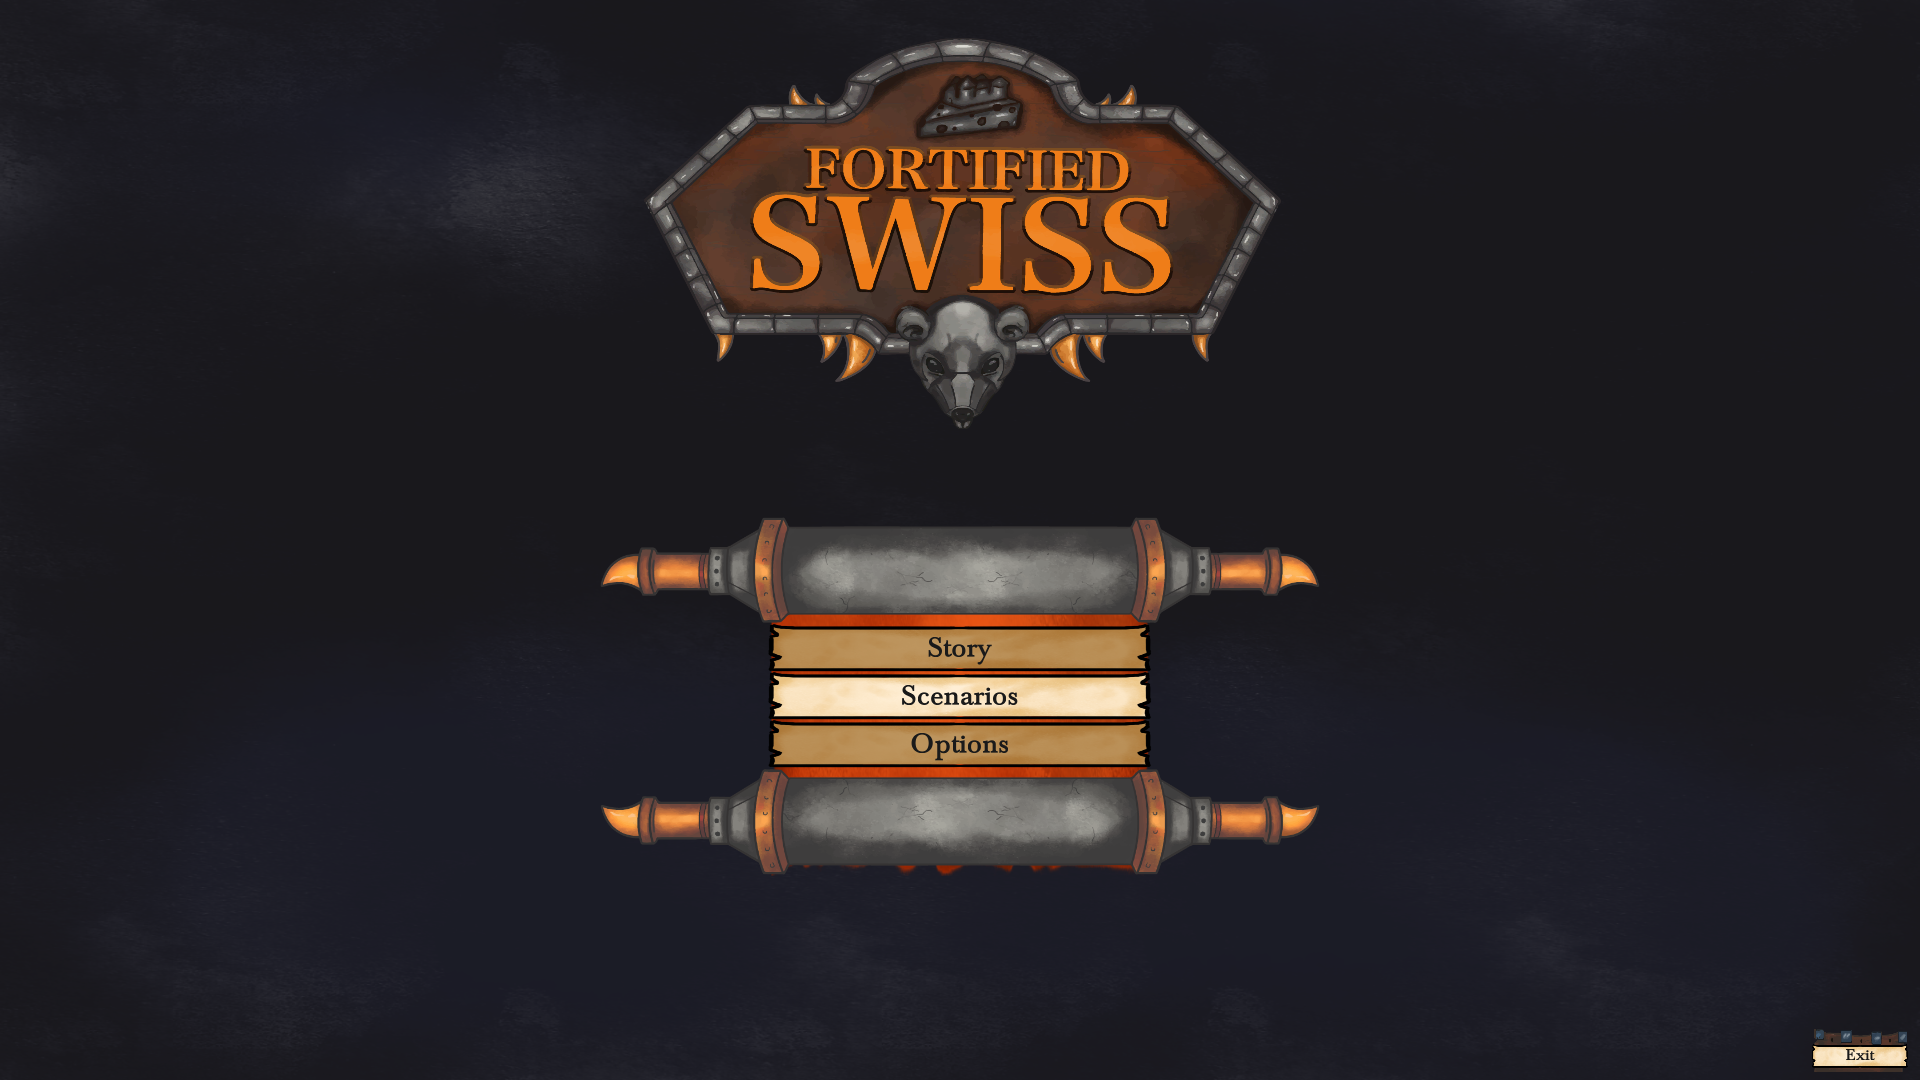 Fortified Swiss